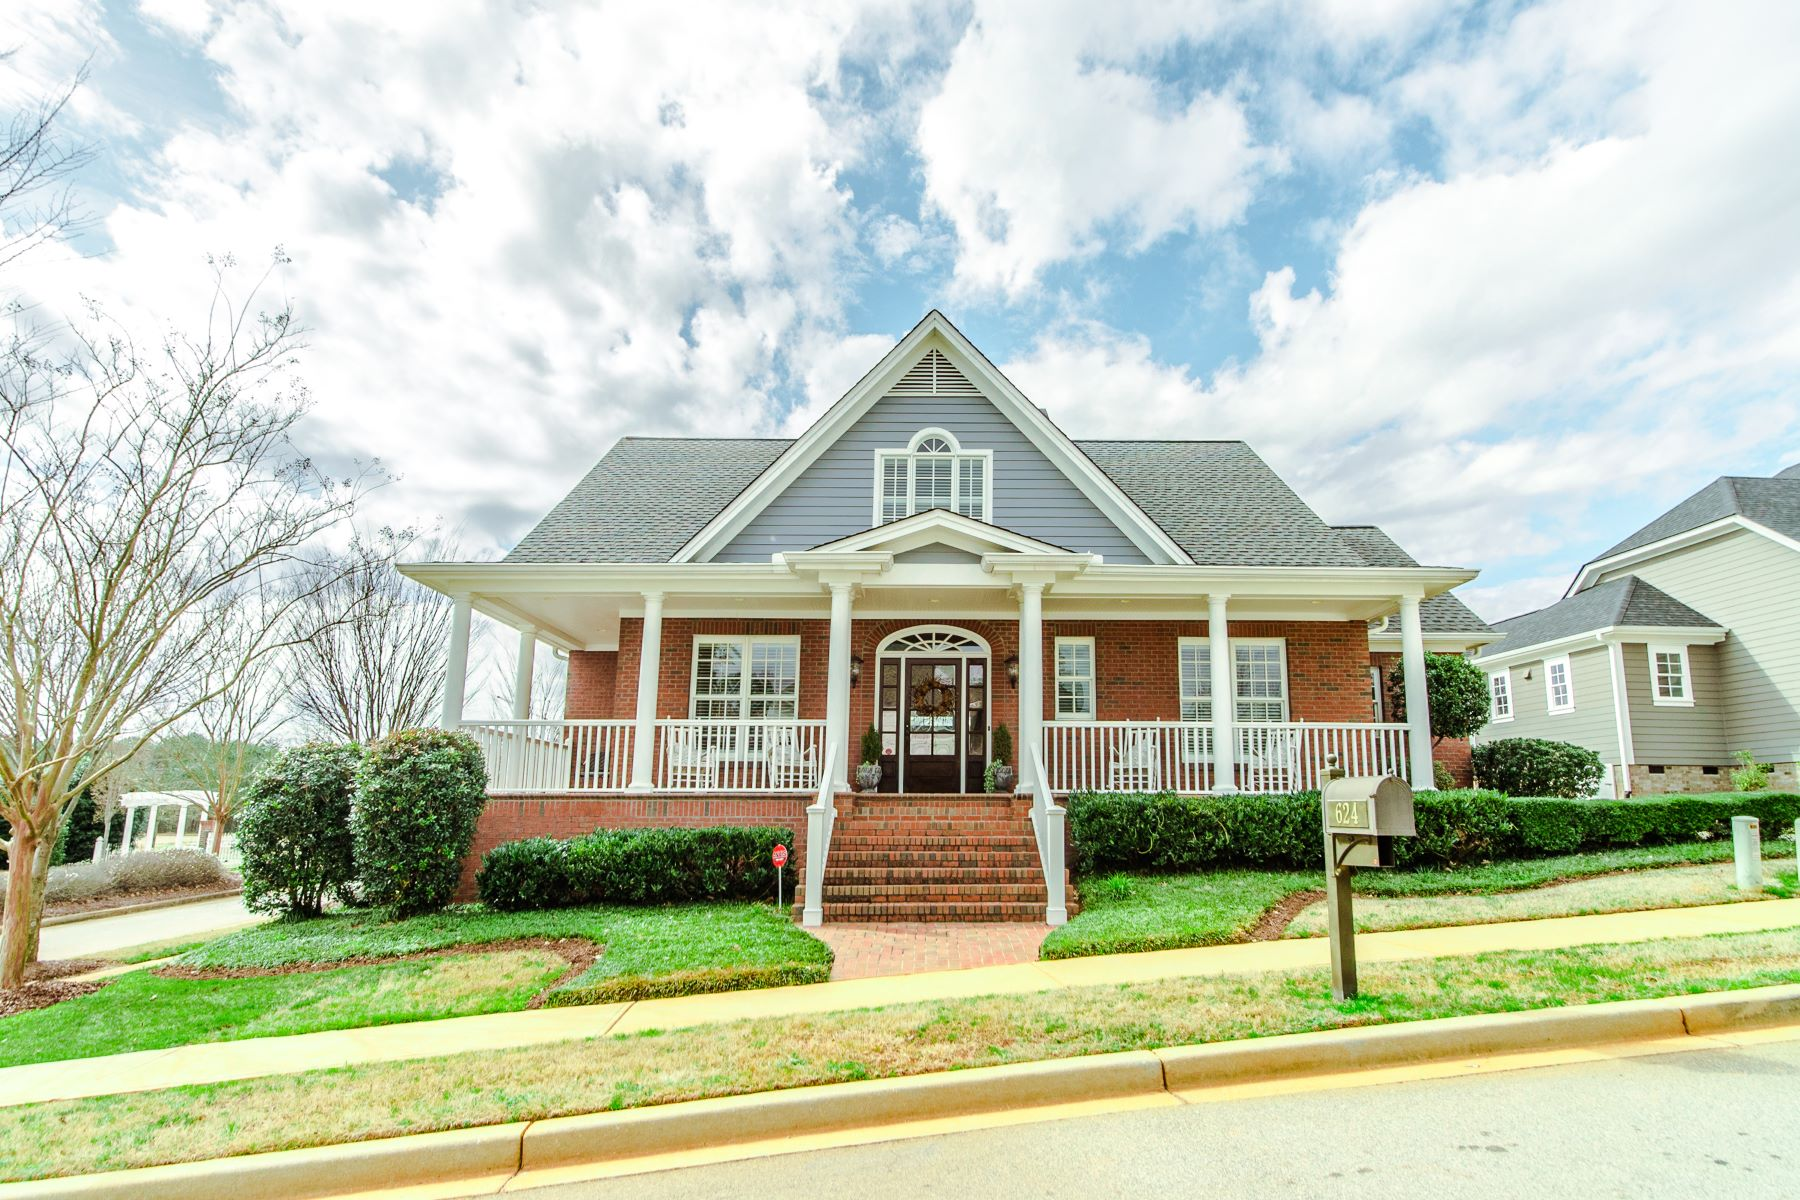 Single Family Homes for Sale at Beautiful Custom Home! 624 Berkmans Lane Greenville, South Carolina 29605 United States